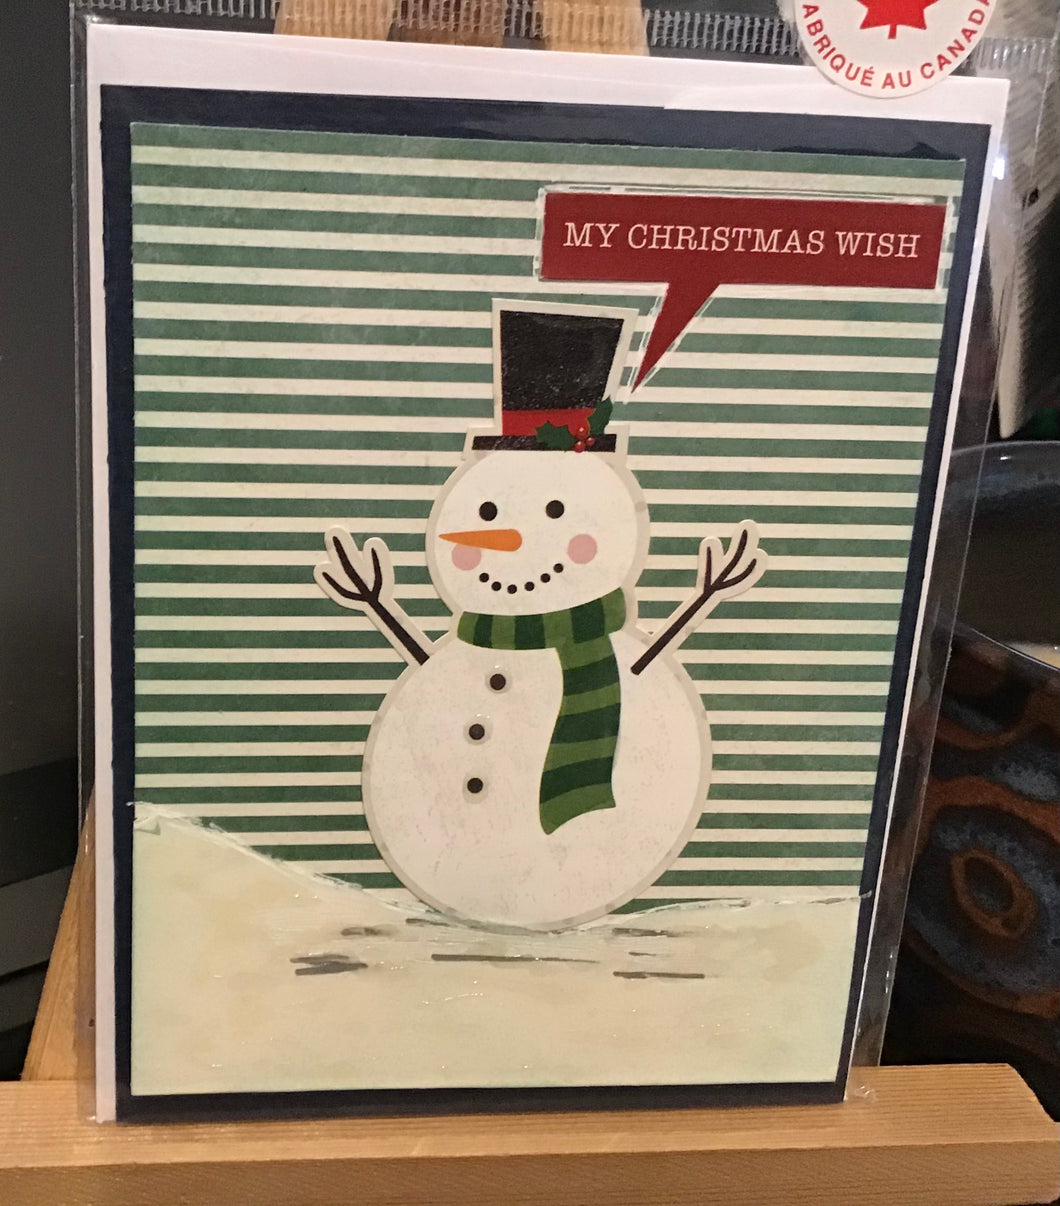 My Christmas Wish Card/ Snowman/ Friendship/ Winter Greeting Card